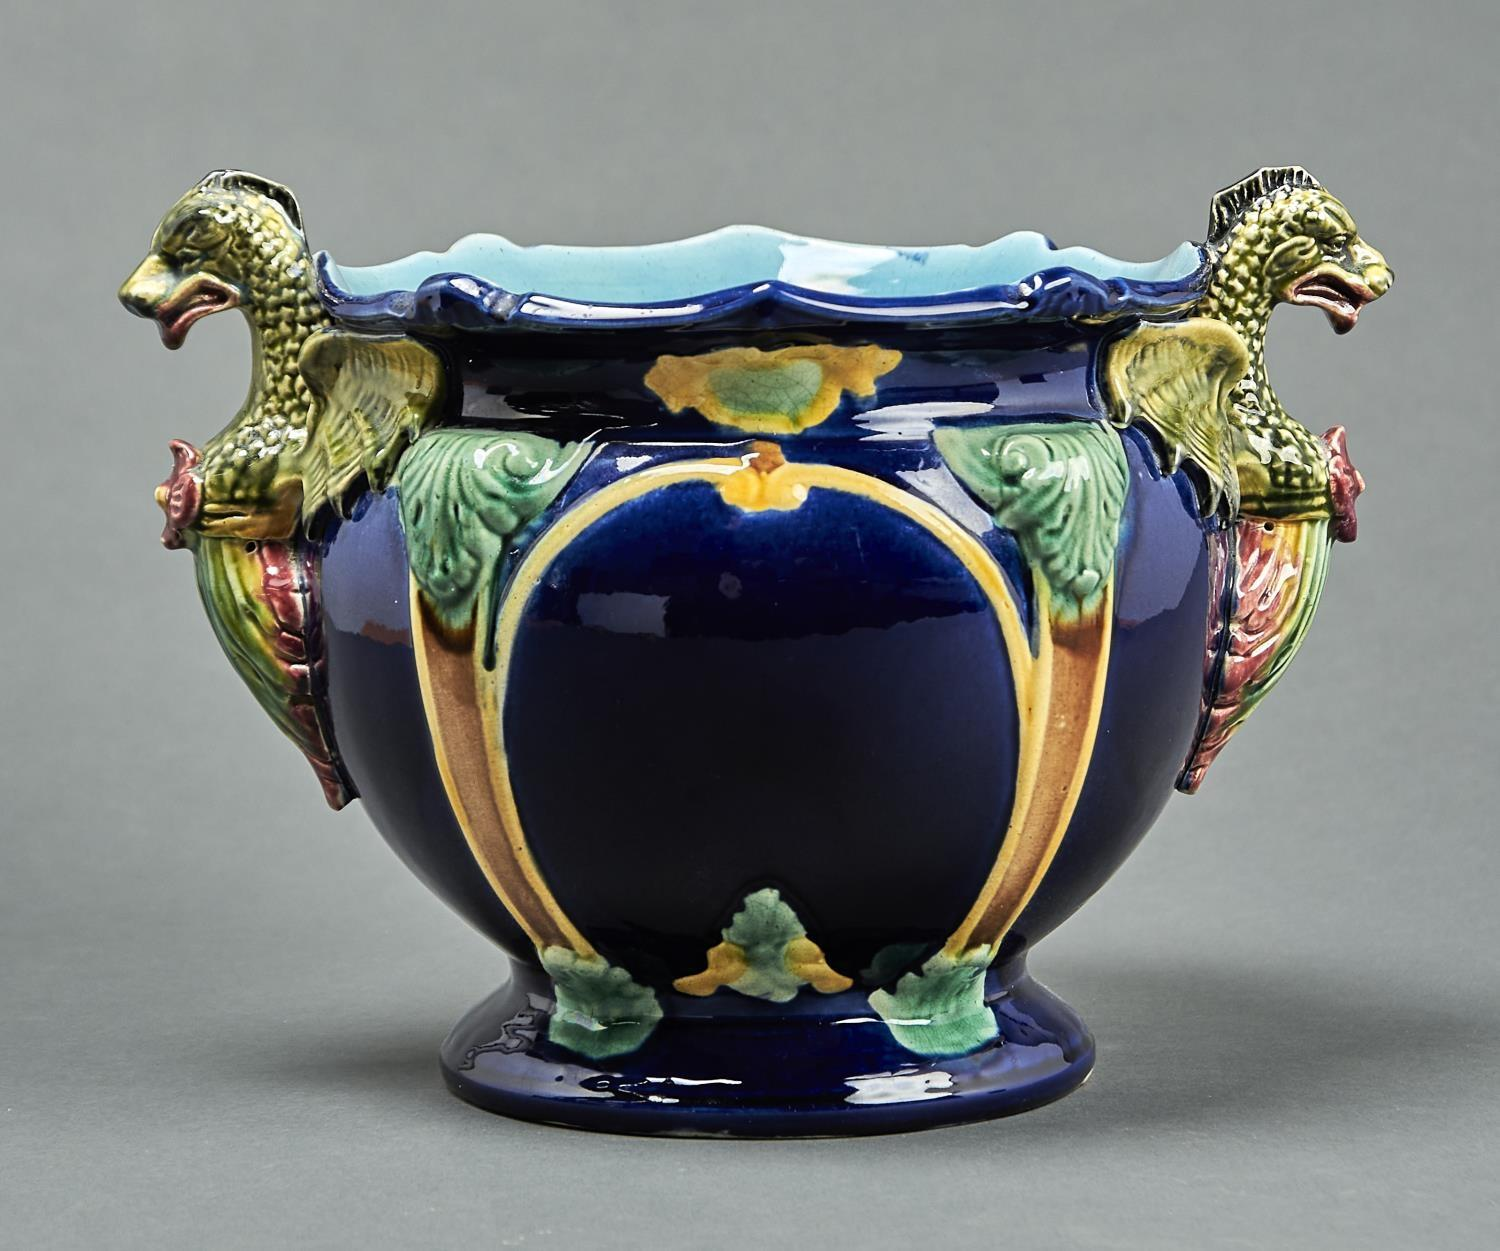 A STAFFORDSHIRE DRAGON HANDLED MAJOLICA JARDINERE, C1880, MOULDED WITH STRAPWORK ON A COBALT